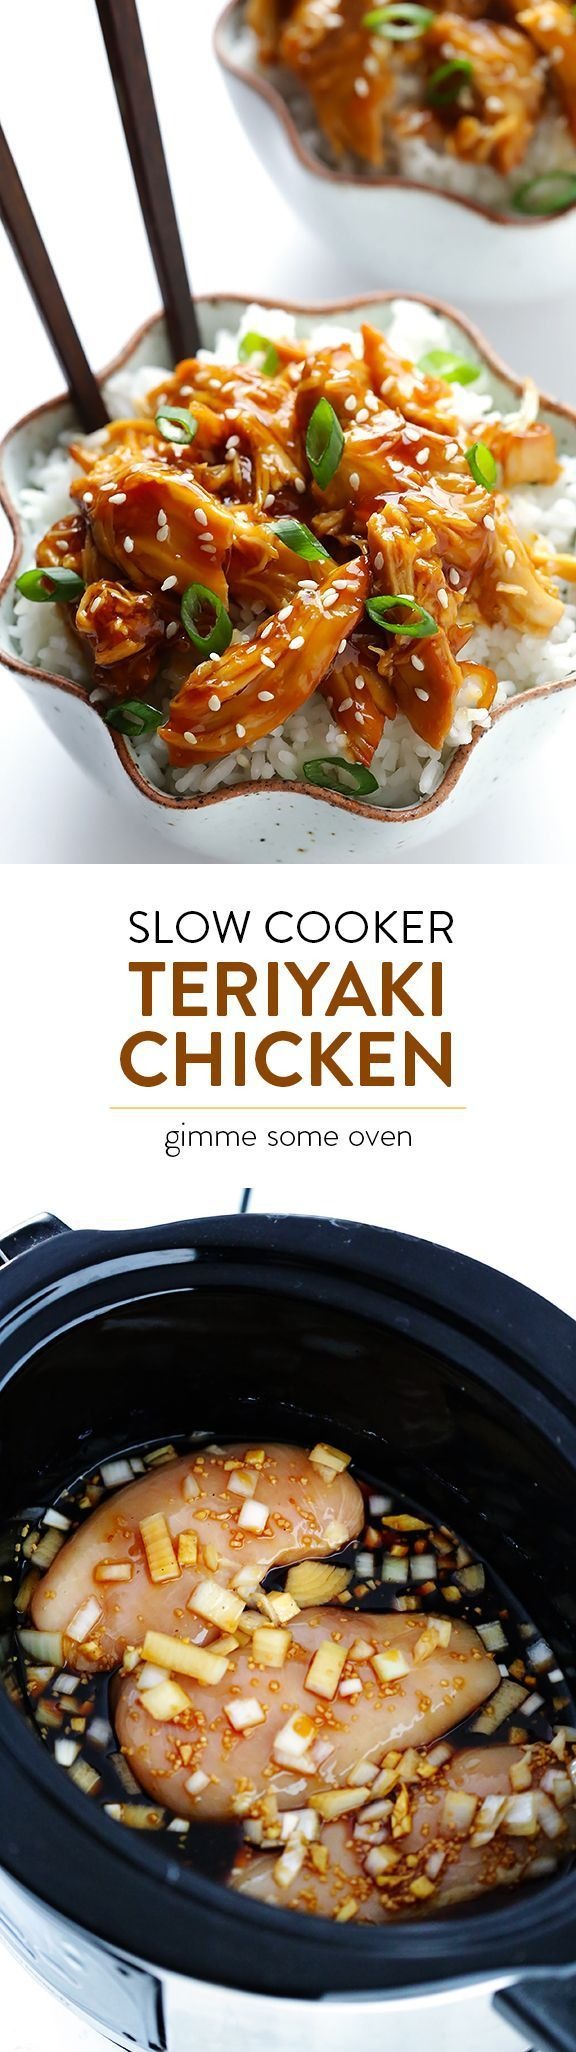 Slow Cooker Teriyaki Chicken -- all you need are 10 minutes to prep this delicious recipe, then let your slow cooker do the rest of the work!